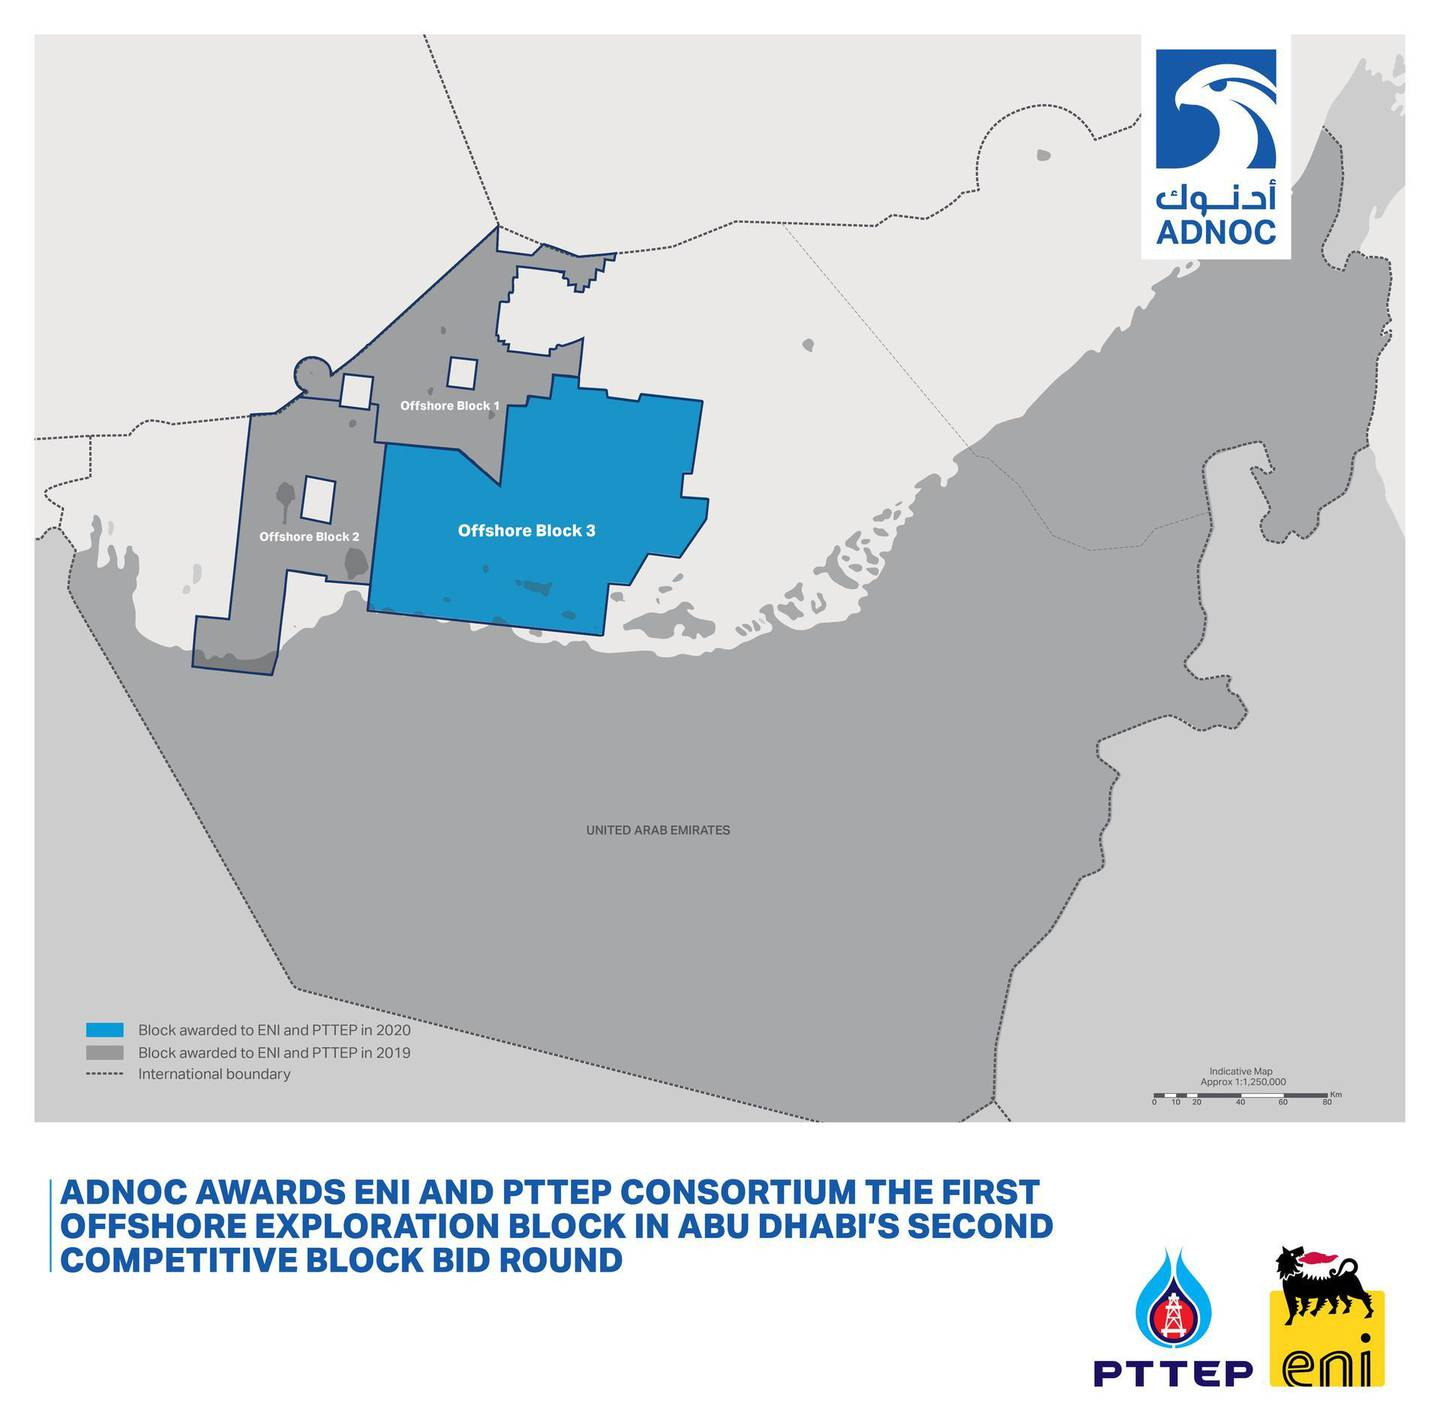 ADNOC Awards Eni and PTTEP Consortium the First Offshore Exploration Block in Abu Dhabi's Second Competitive Block Bid Round. courtesy: ADNOC